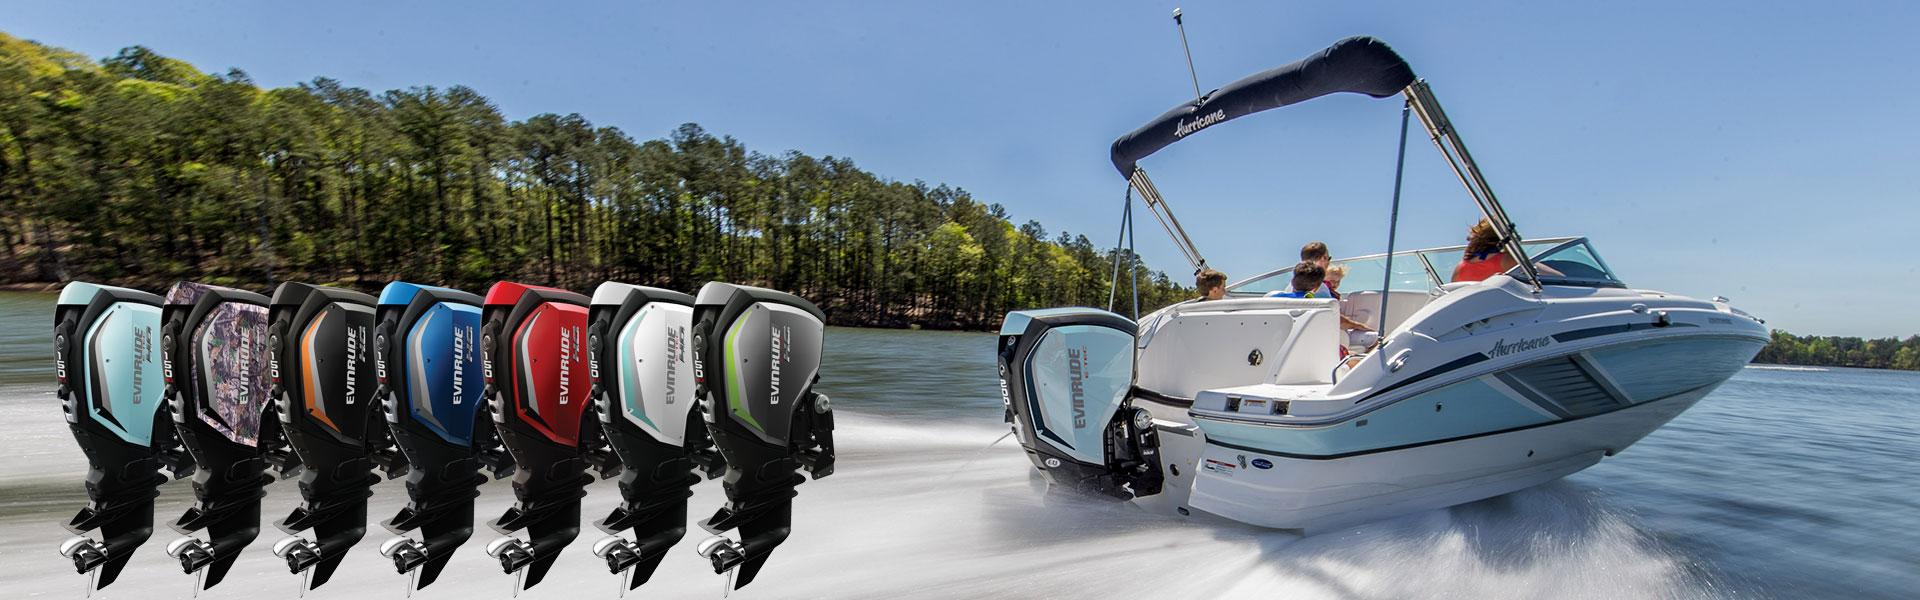 on-Water_Evinrude